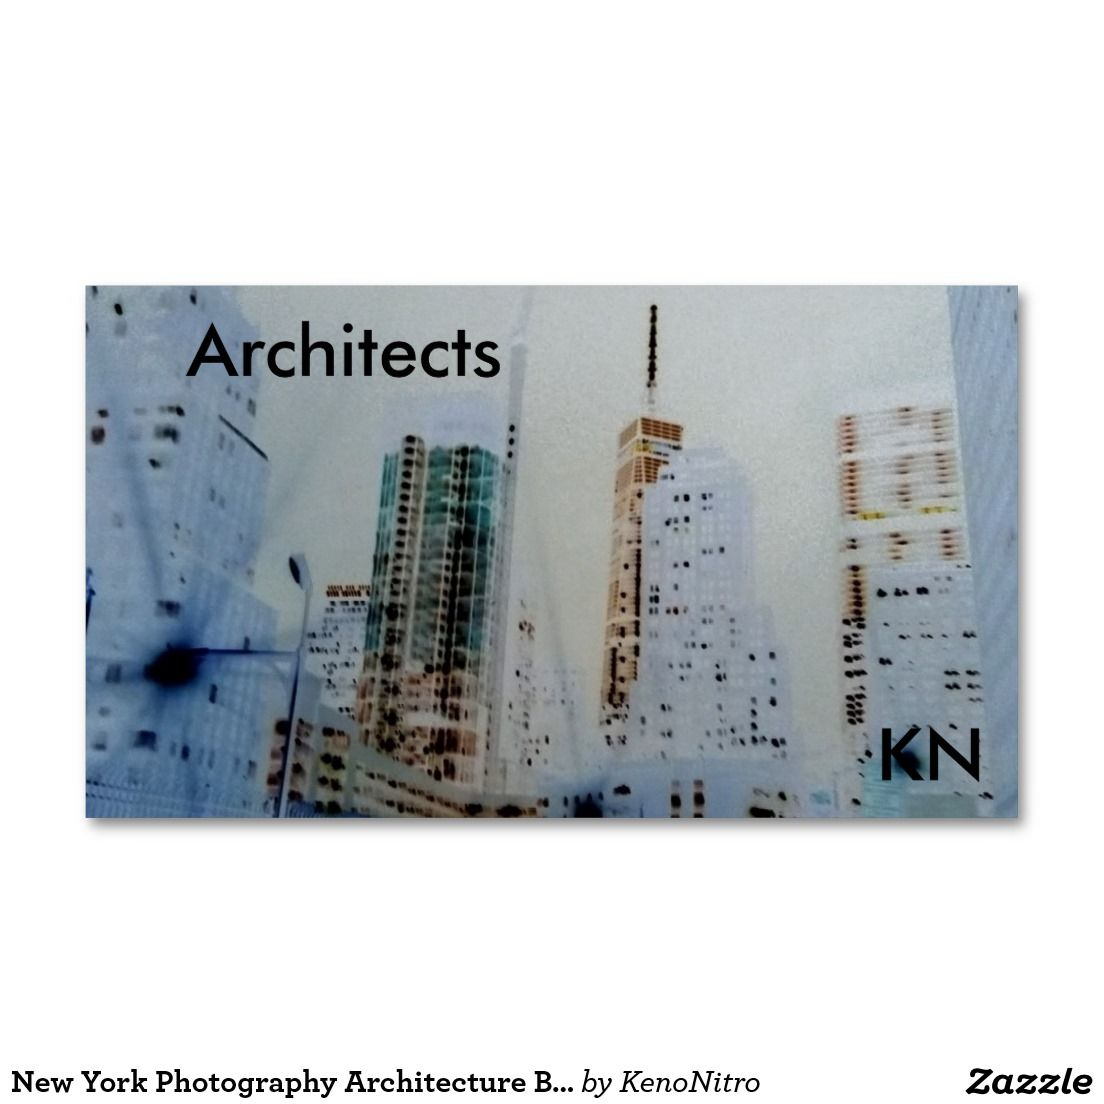 New York Photography Architecture Business Card   Zazzle Top ...